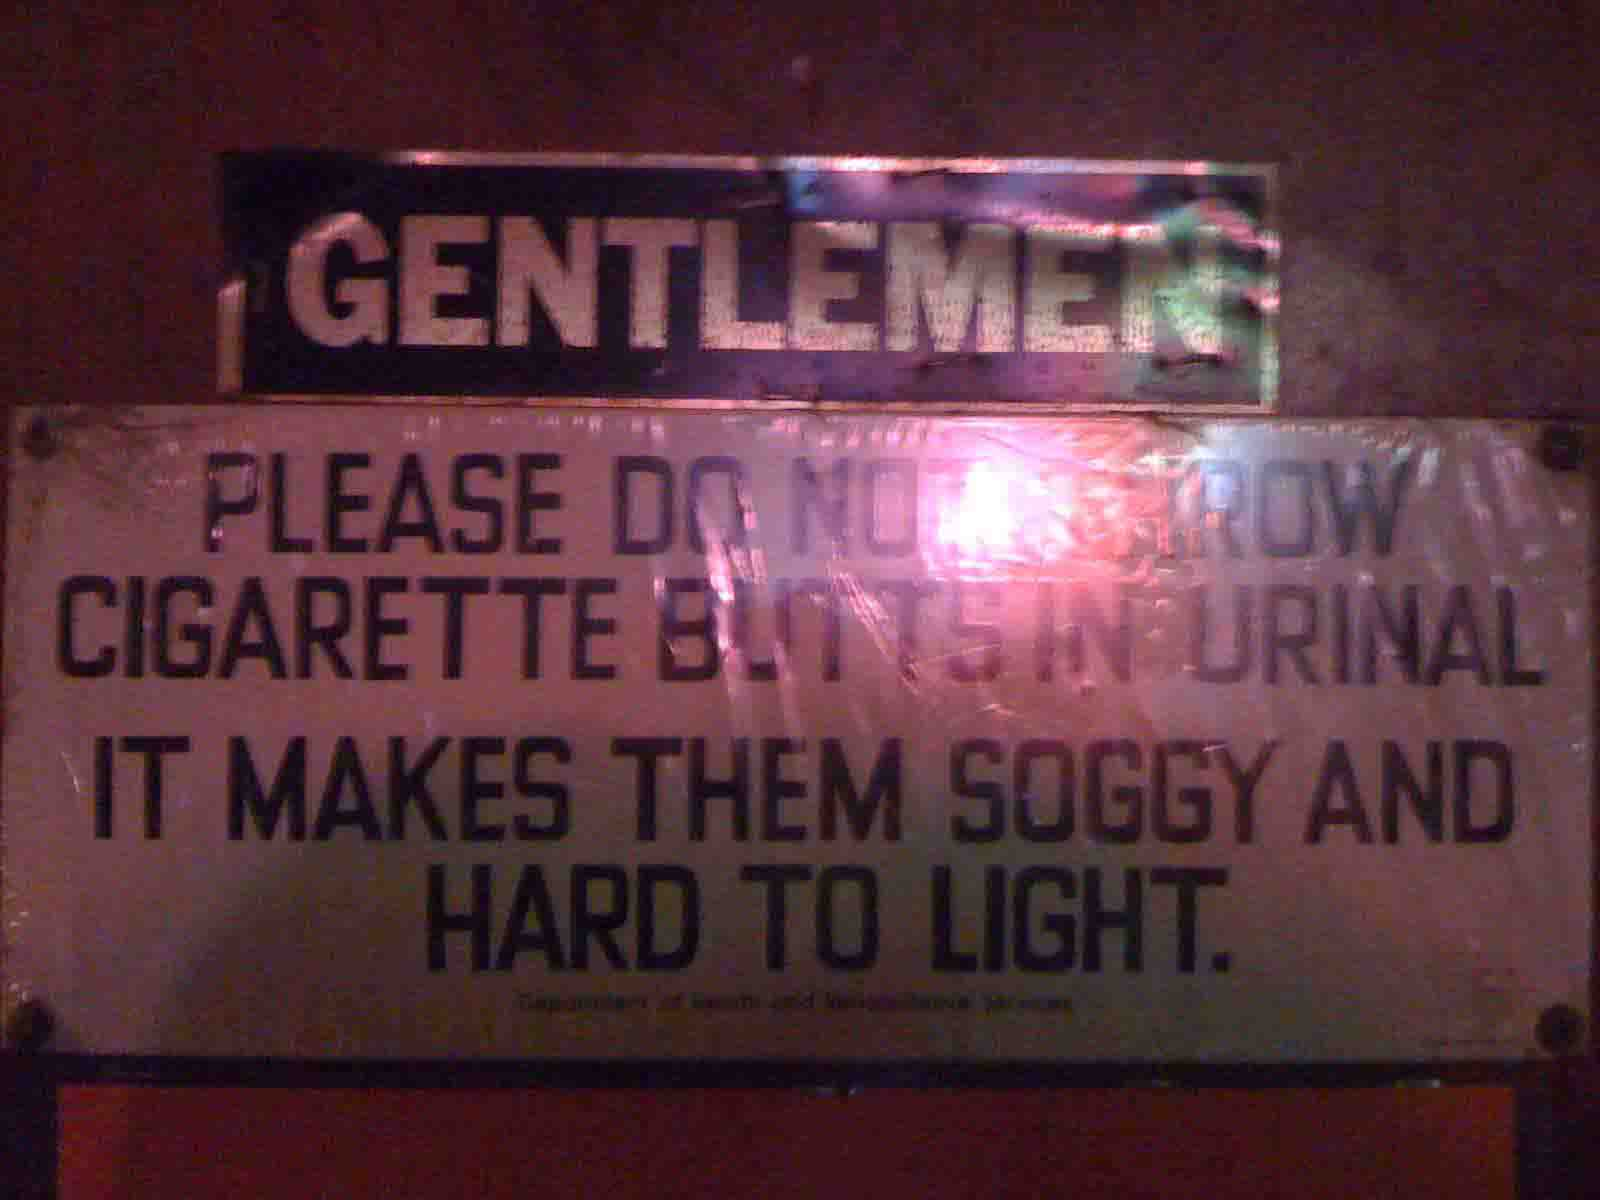 Neptune Beach, FL - Pete's Bar - Please Do Not Throw Cigarette Butts in Urinal It Makes Them Soggy and Hard to Light